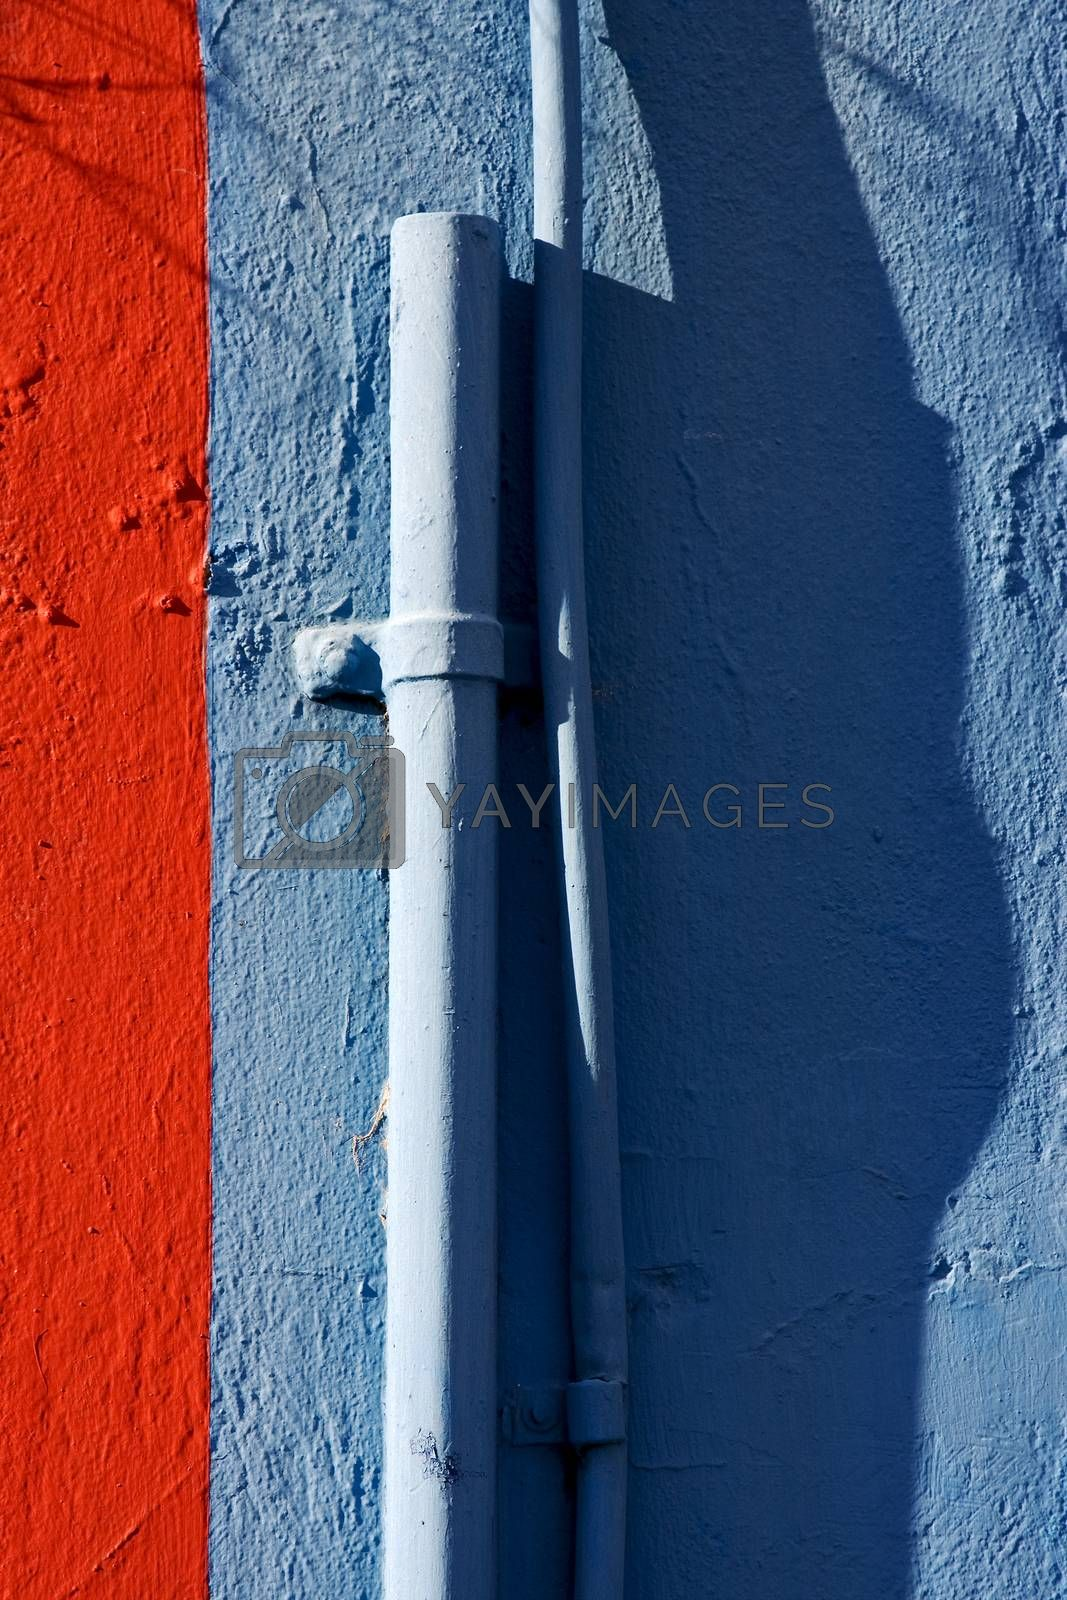 Royalty free image of blue colored pipe and red wall  by lkpro